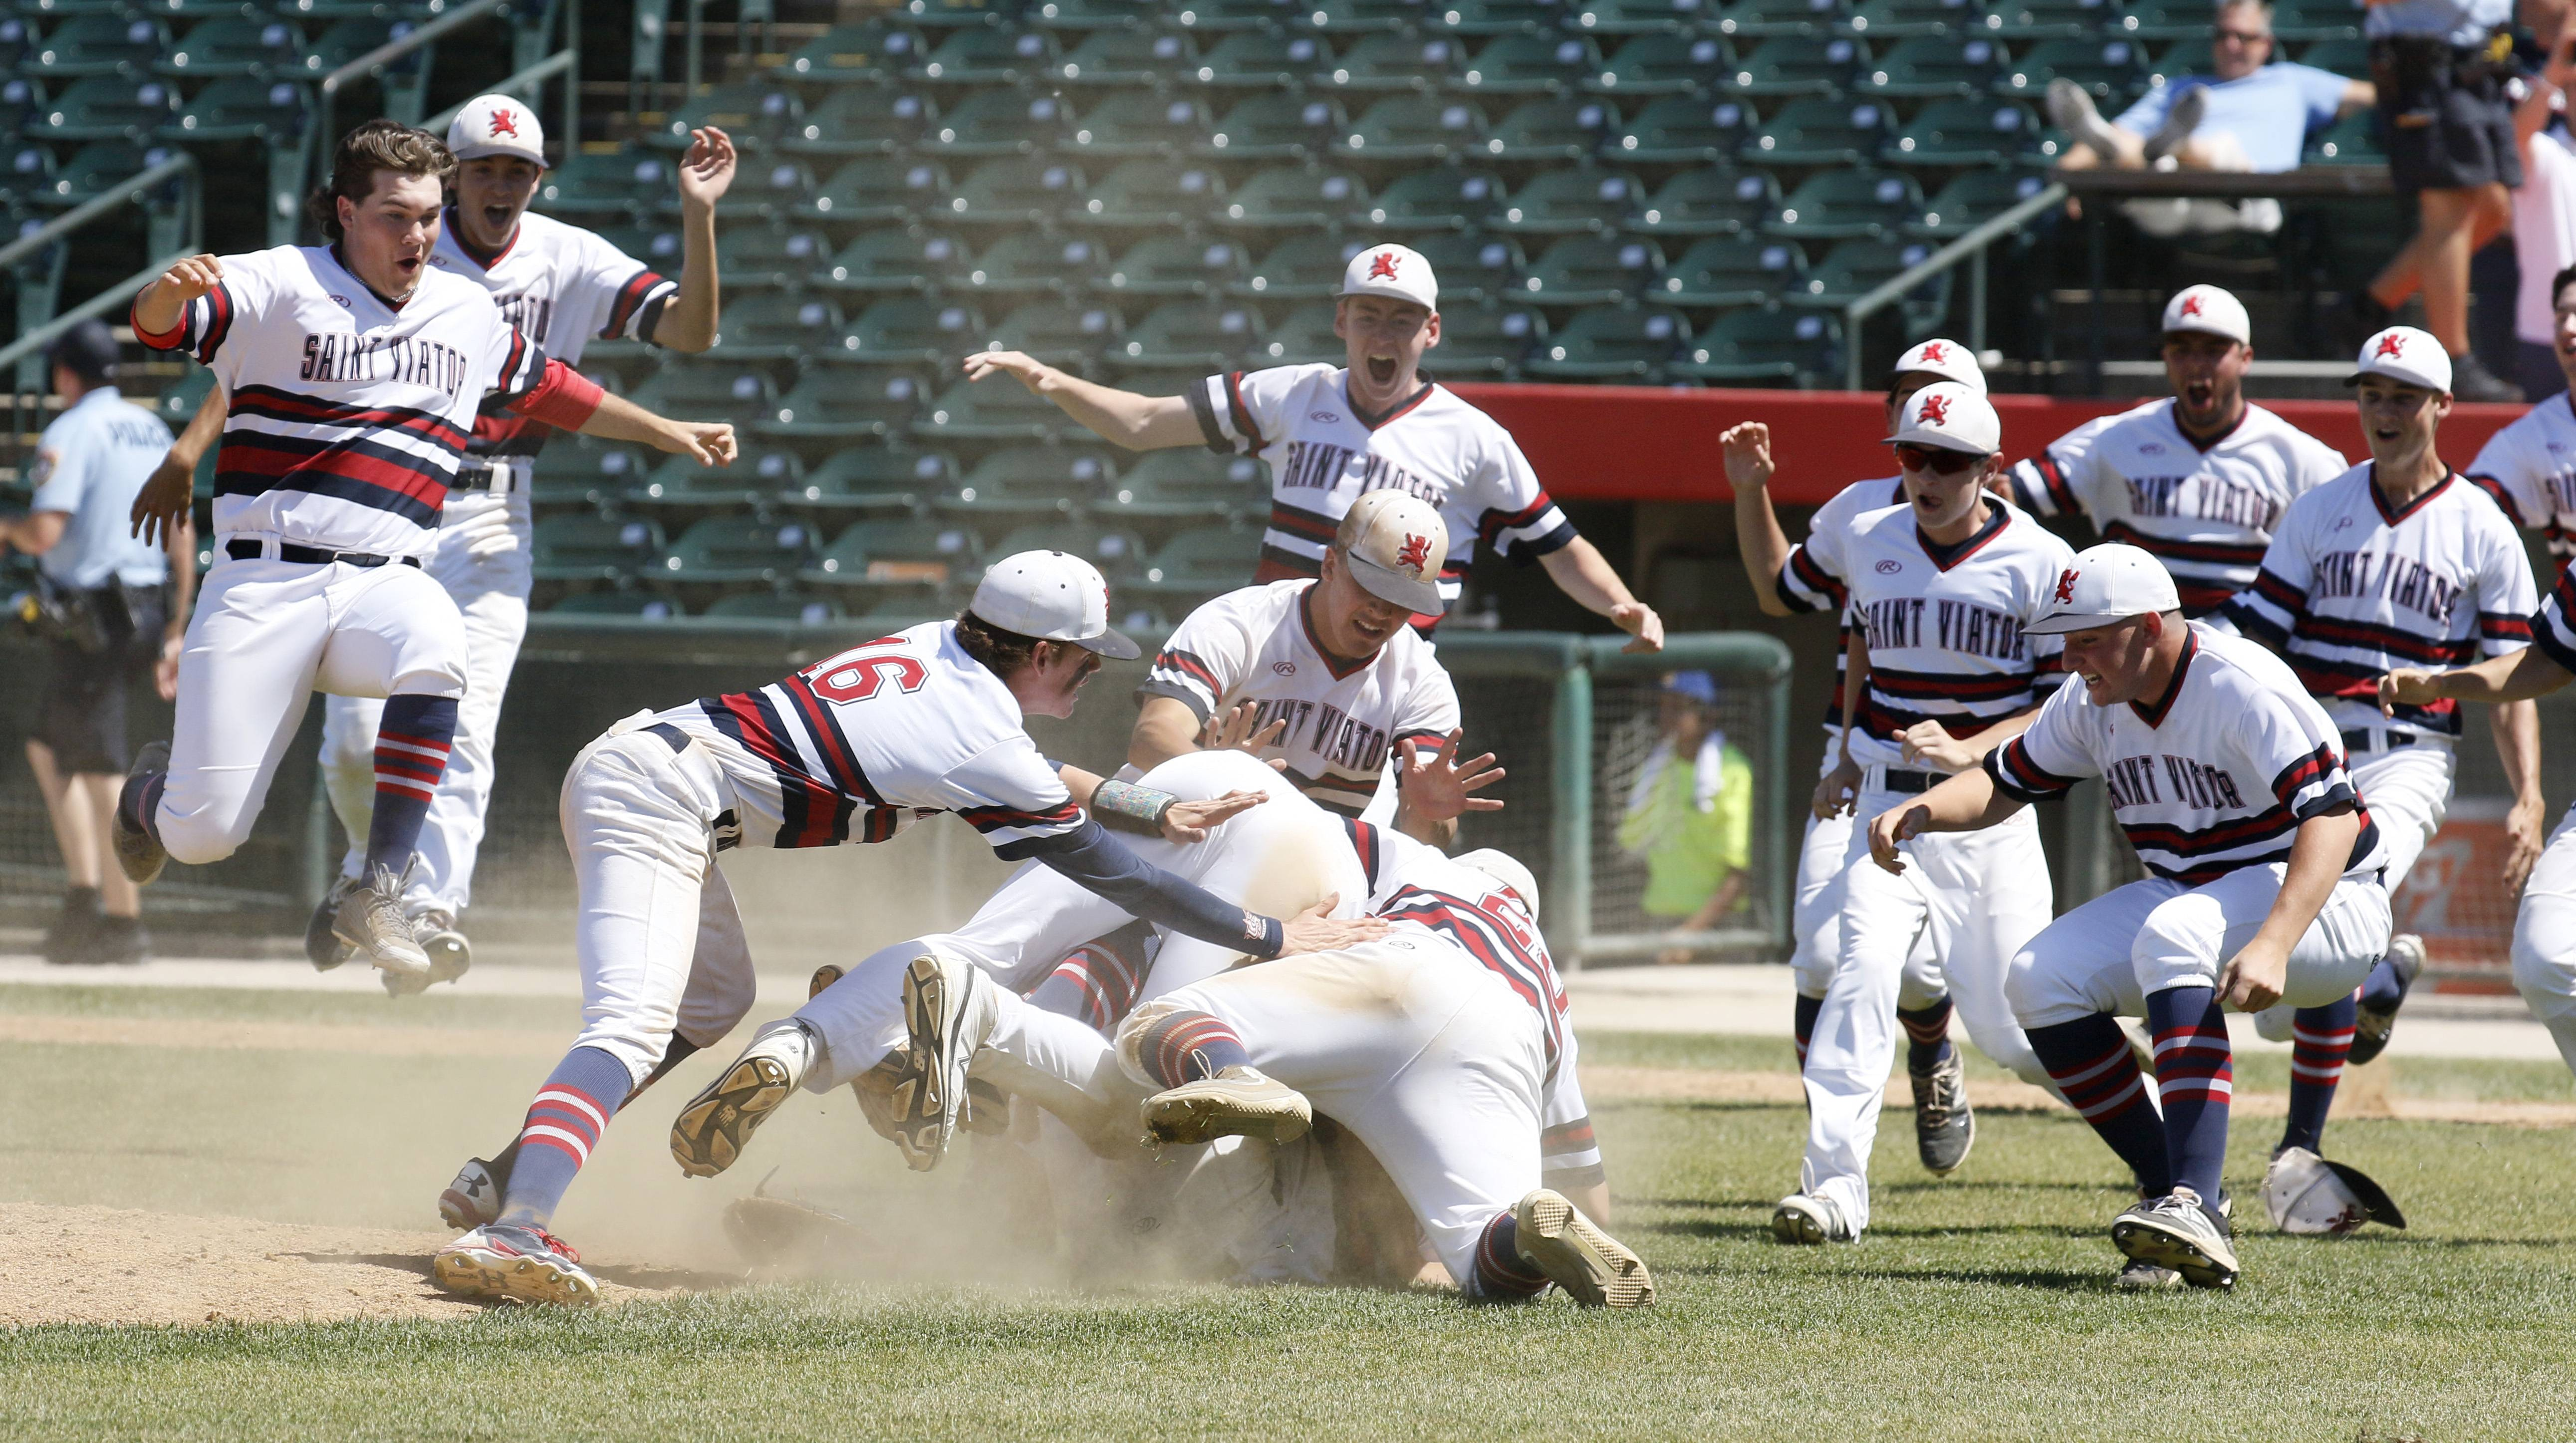 St. Viator players celebrate their Class 3A state championship with a 10-8 win over Marian Catholic on Saturday in Joliet.